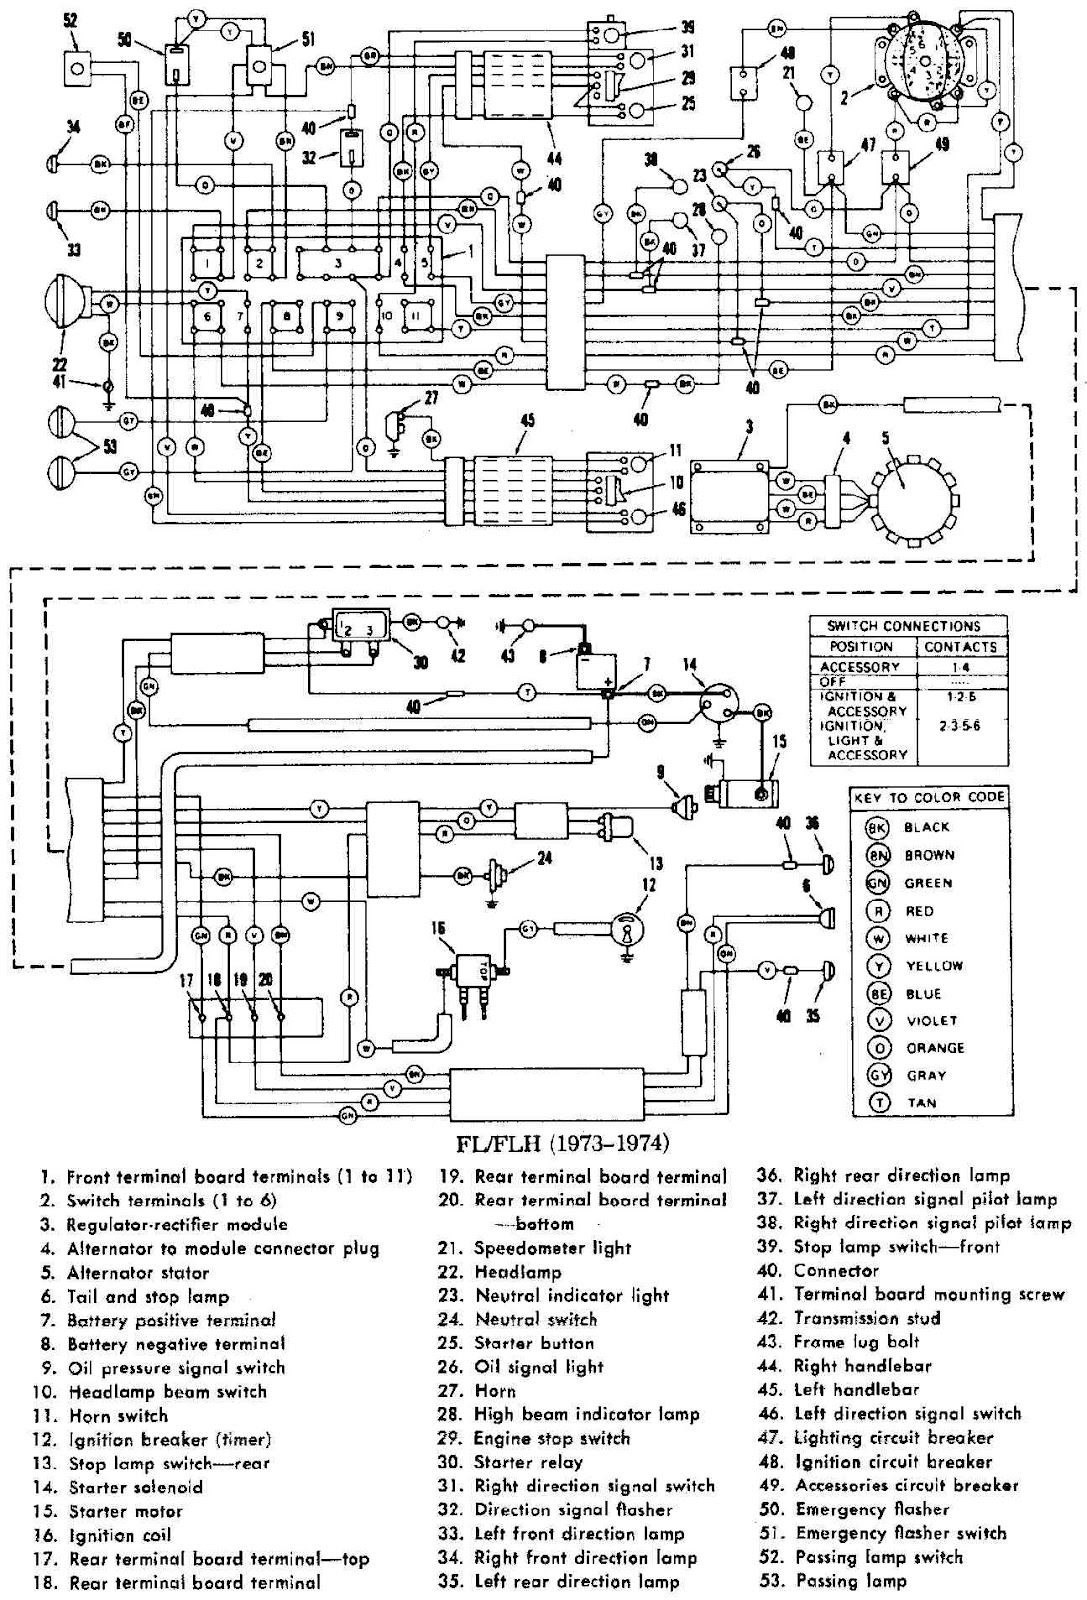 wiring diagrams tags and schematics harley davidson wiring